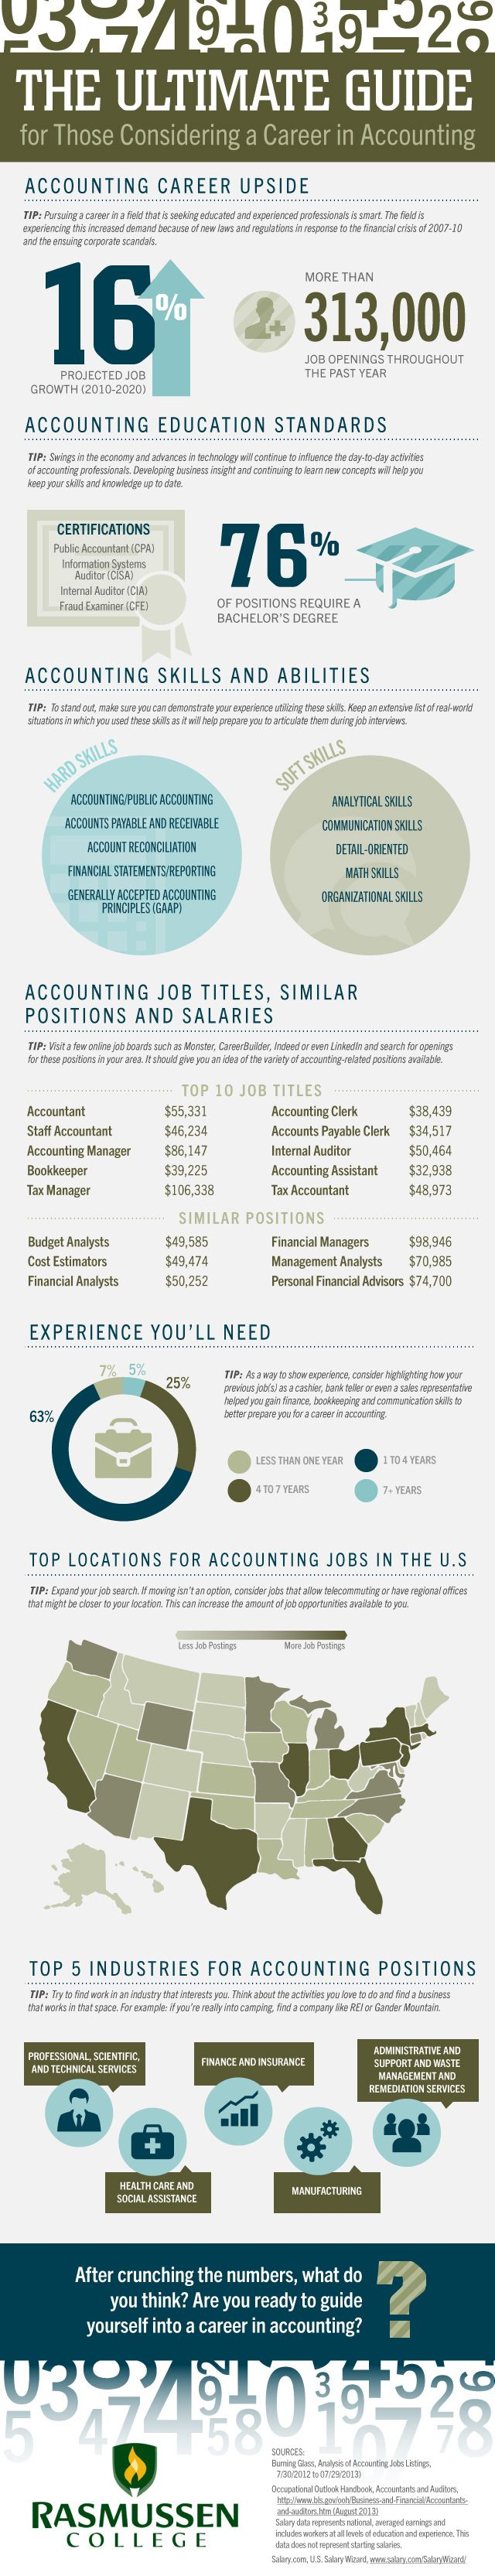 how to be job search and interview ready infographic how to be job search and interview ready infographic elearninginfographics com job search interview ready infographic career trends